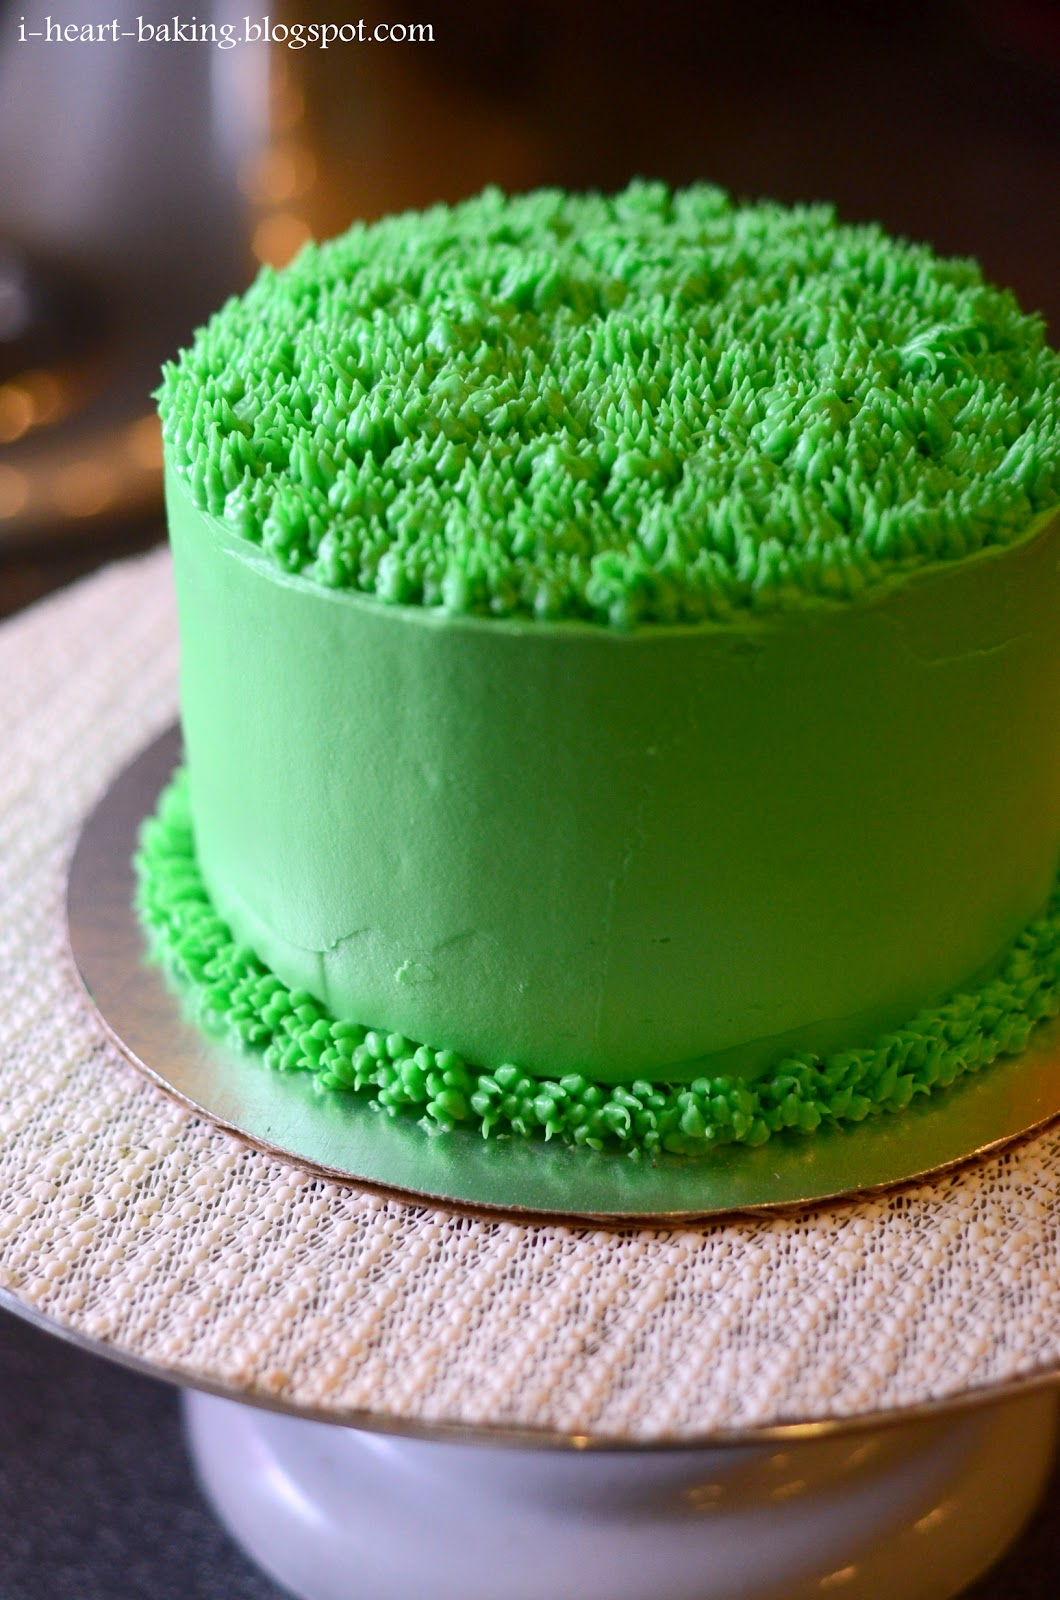 i heart baking!: golf ball cake - chocolate cake with ...